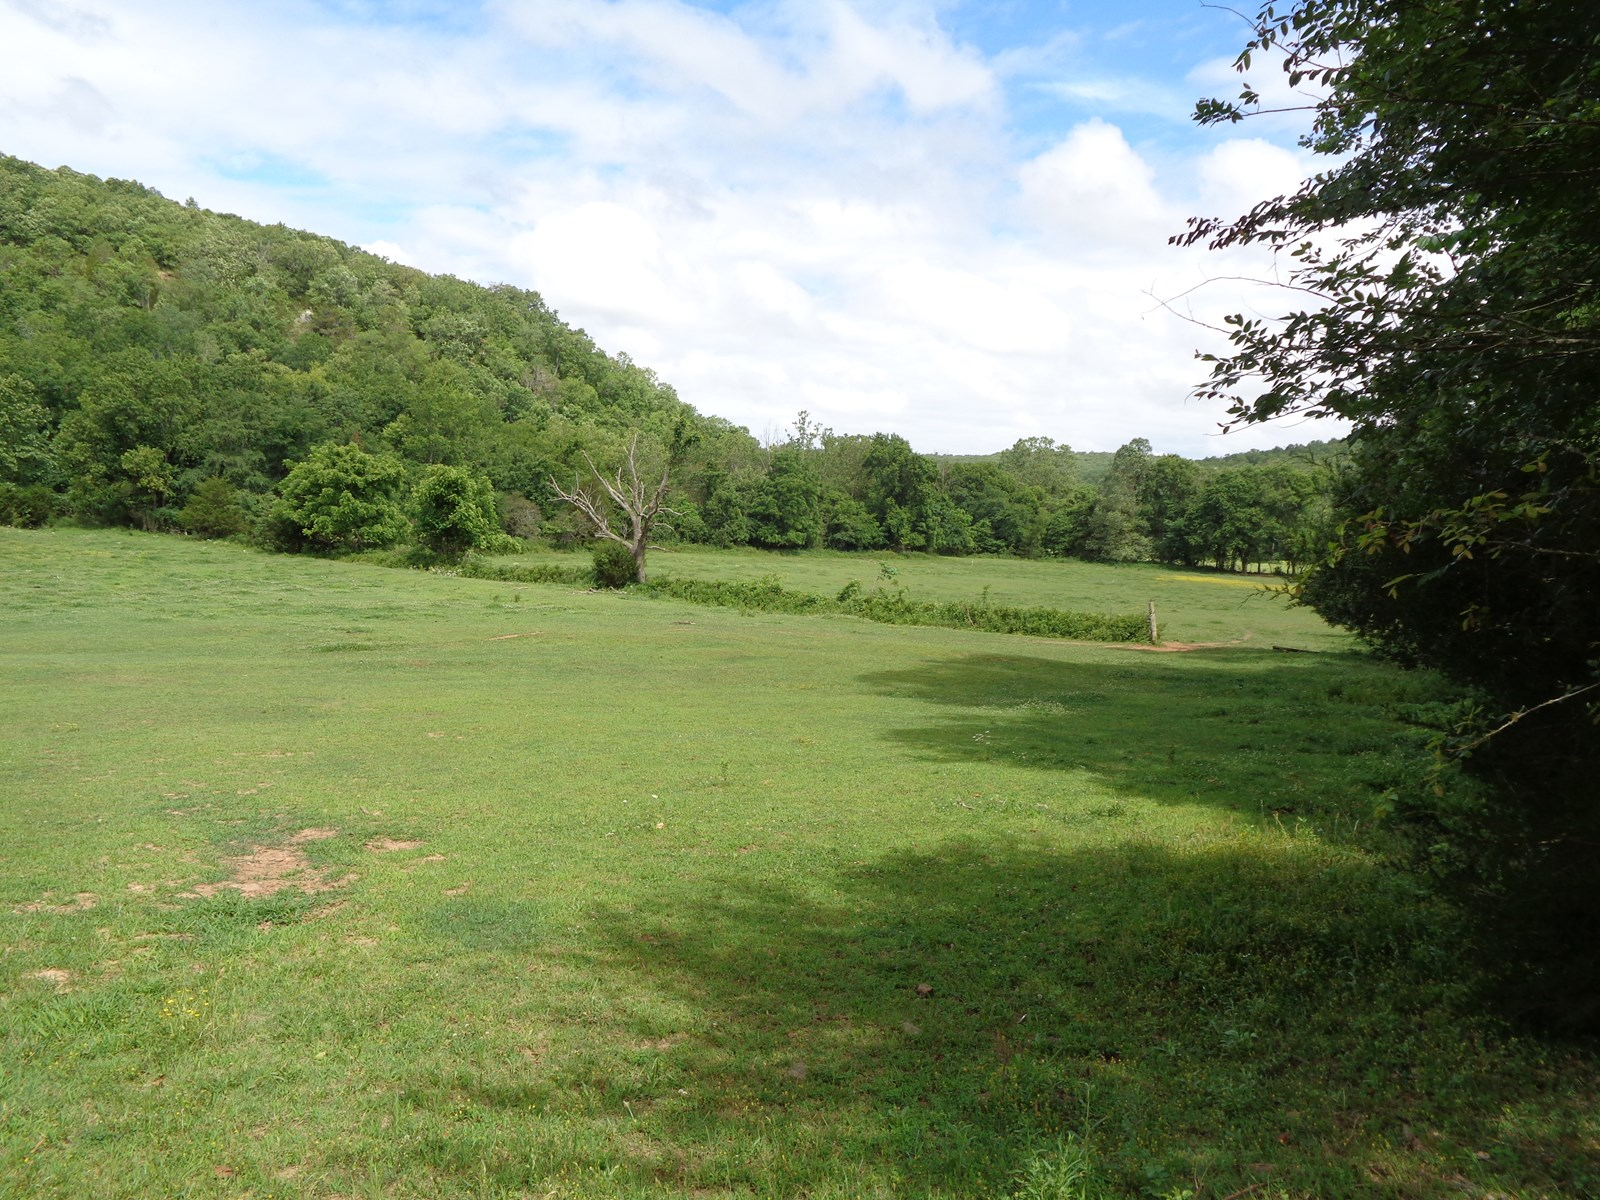 Witter, Arkansas-Madison County 180 acre property For Sale